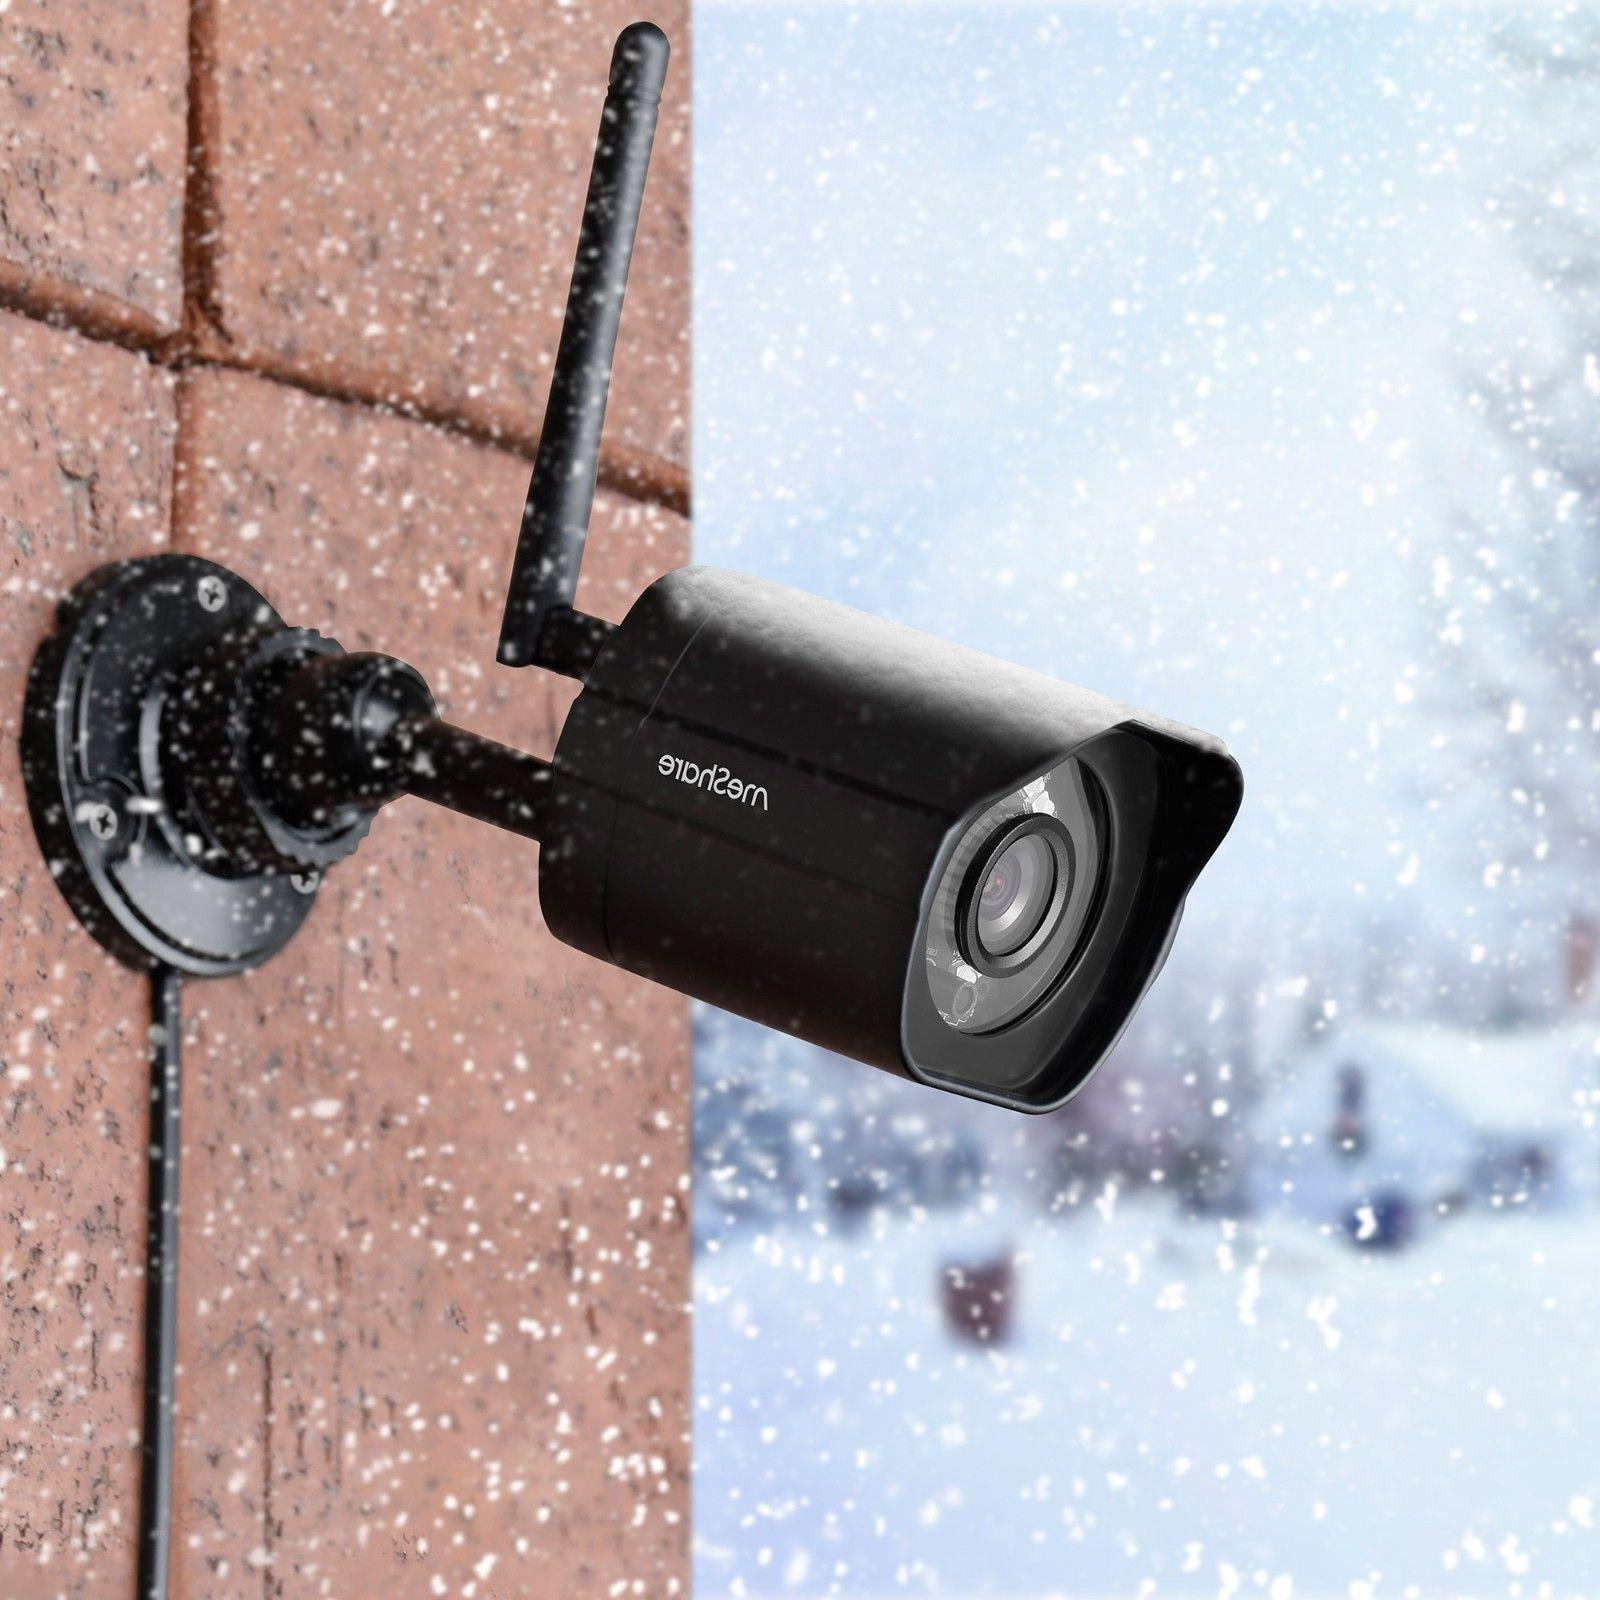 meShare 1080p Outdoor Wireless Security Camera Pack Smart